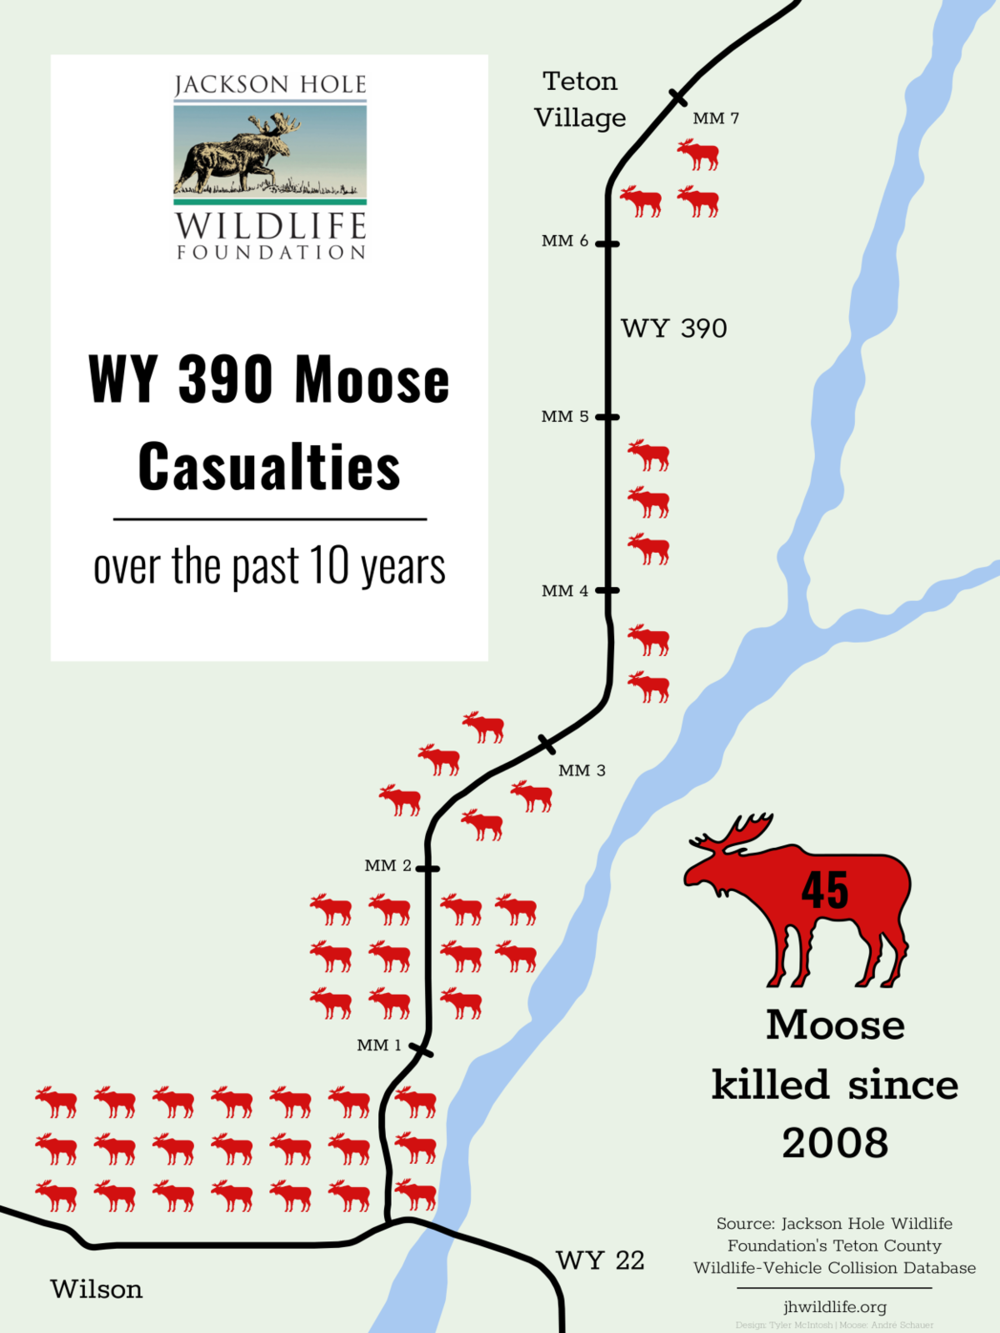 A Jackson Hole Wildlife Foundation graphic shows deadly areas for moose in Teton County, Wyoming. (Photo Jackson Hole Wildlife Foundation.)